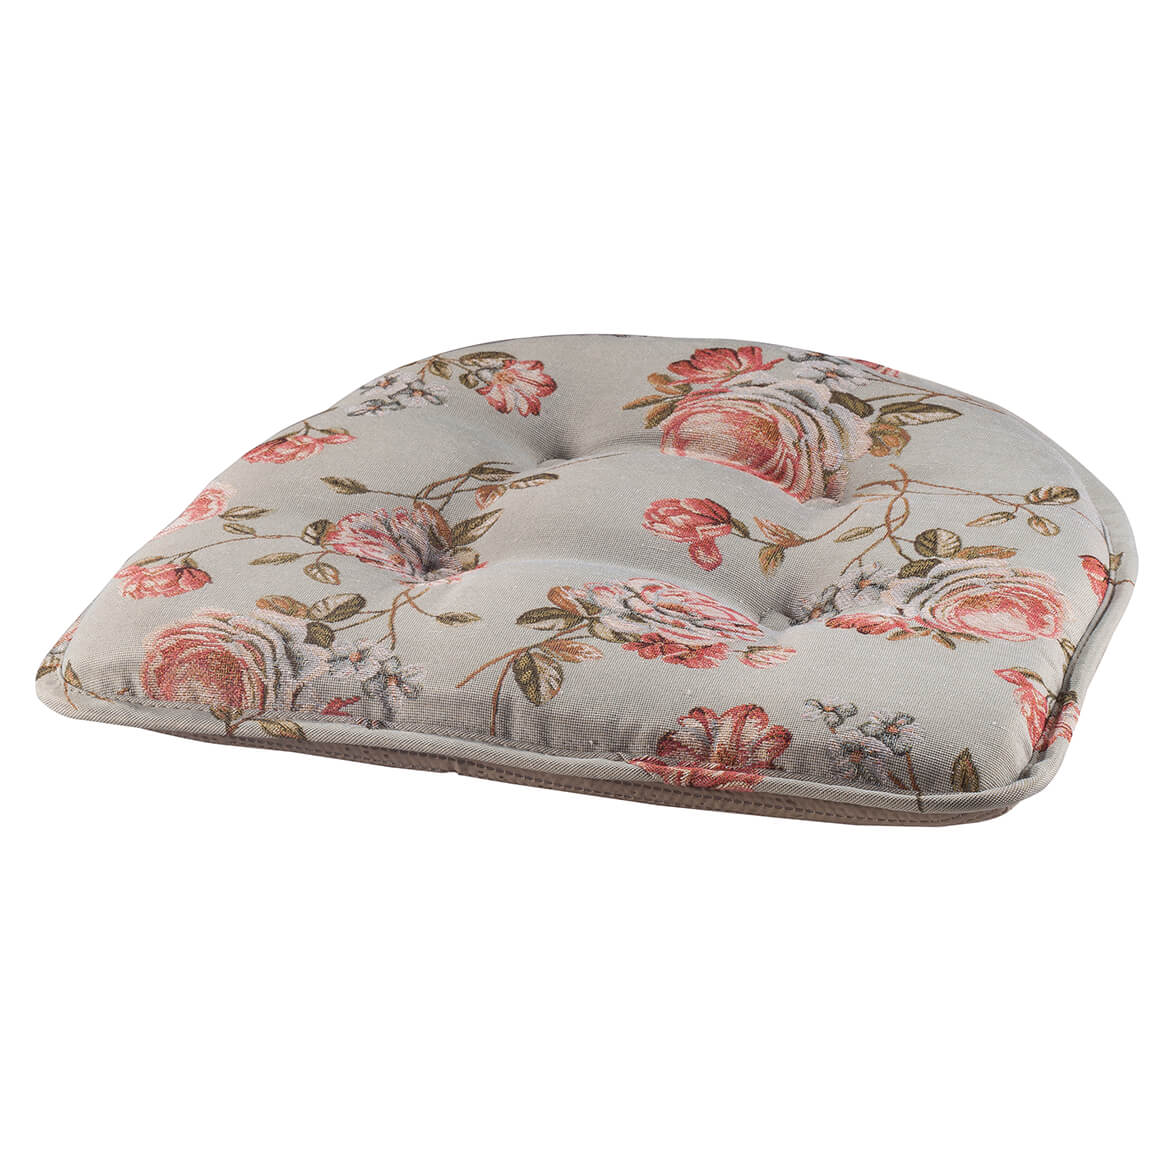 Kimberly Rose Tapestry Chair Pad with Gripper